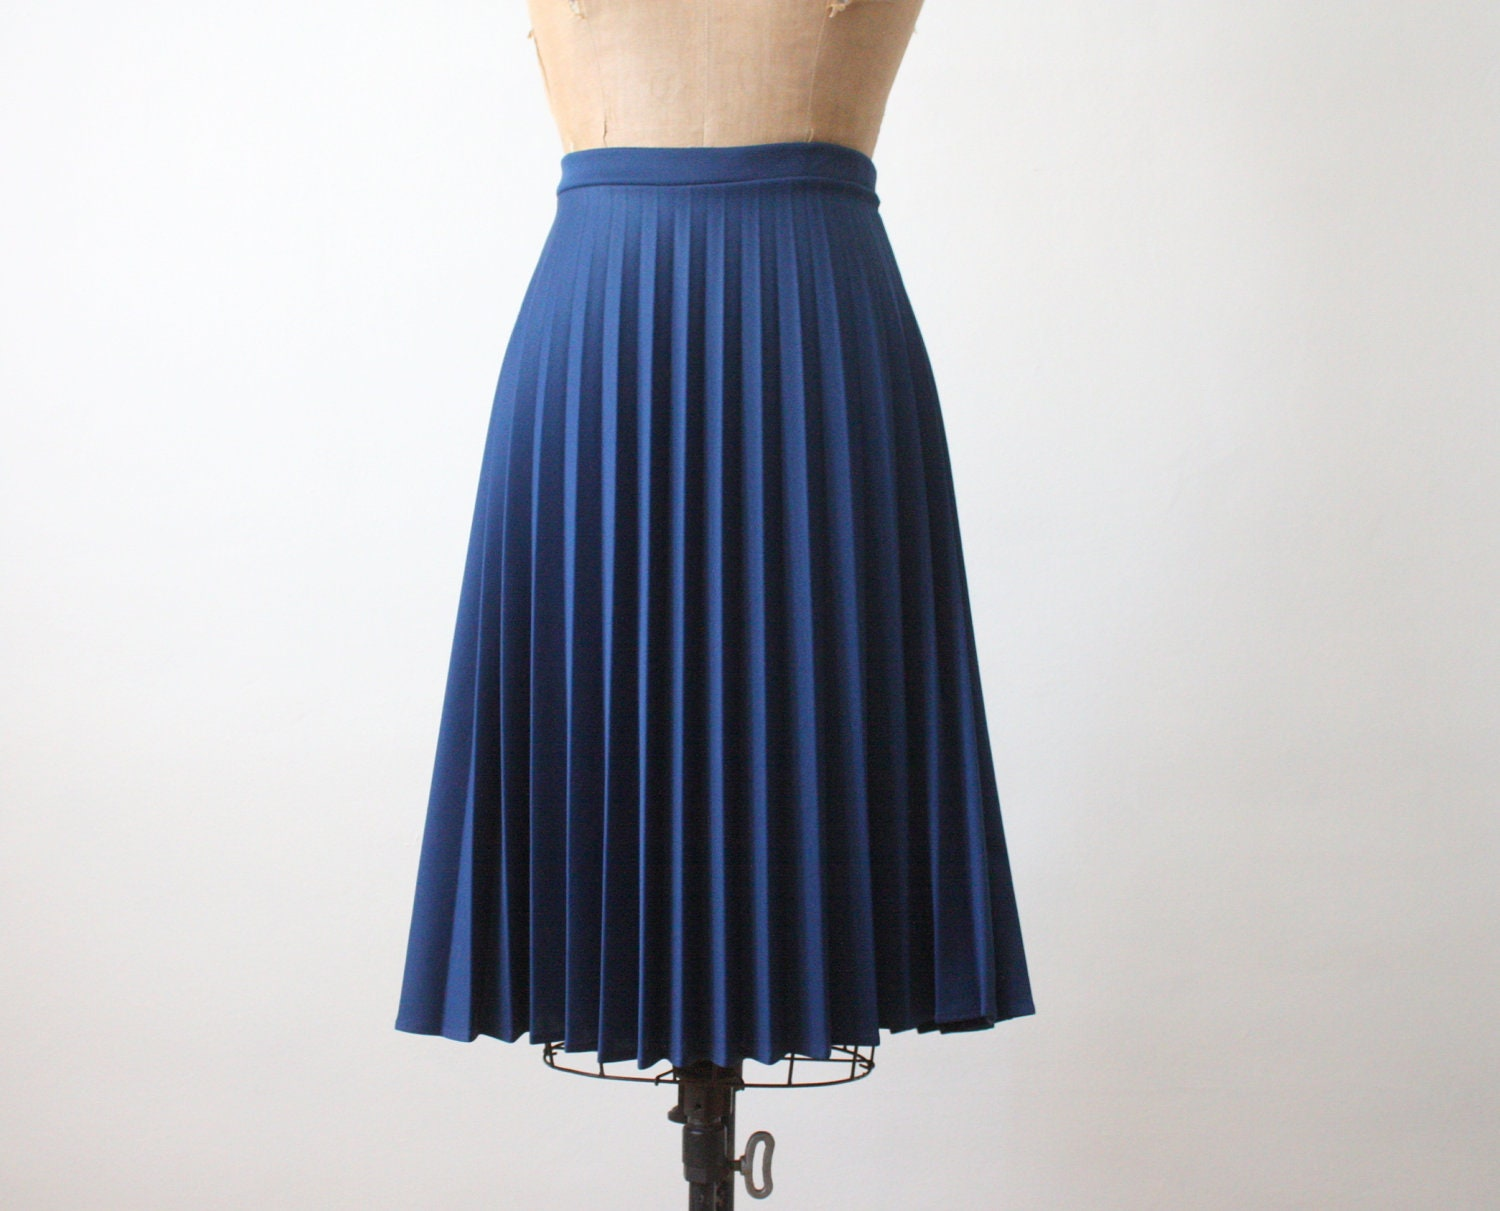 1970 s navy blue accordion pleated skirt